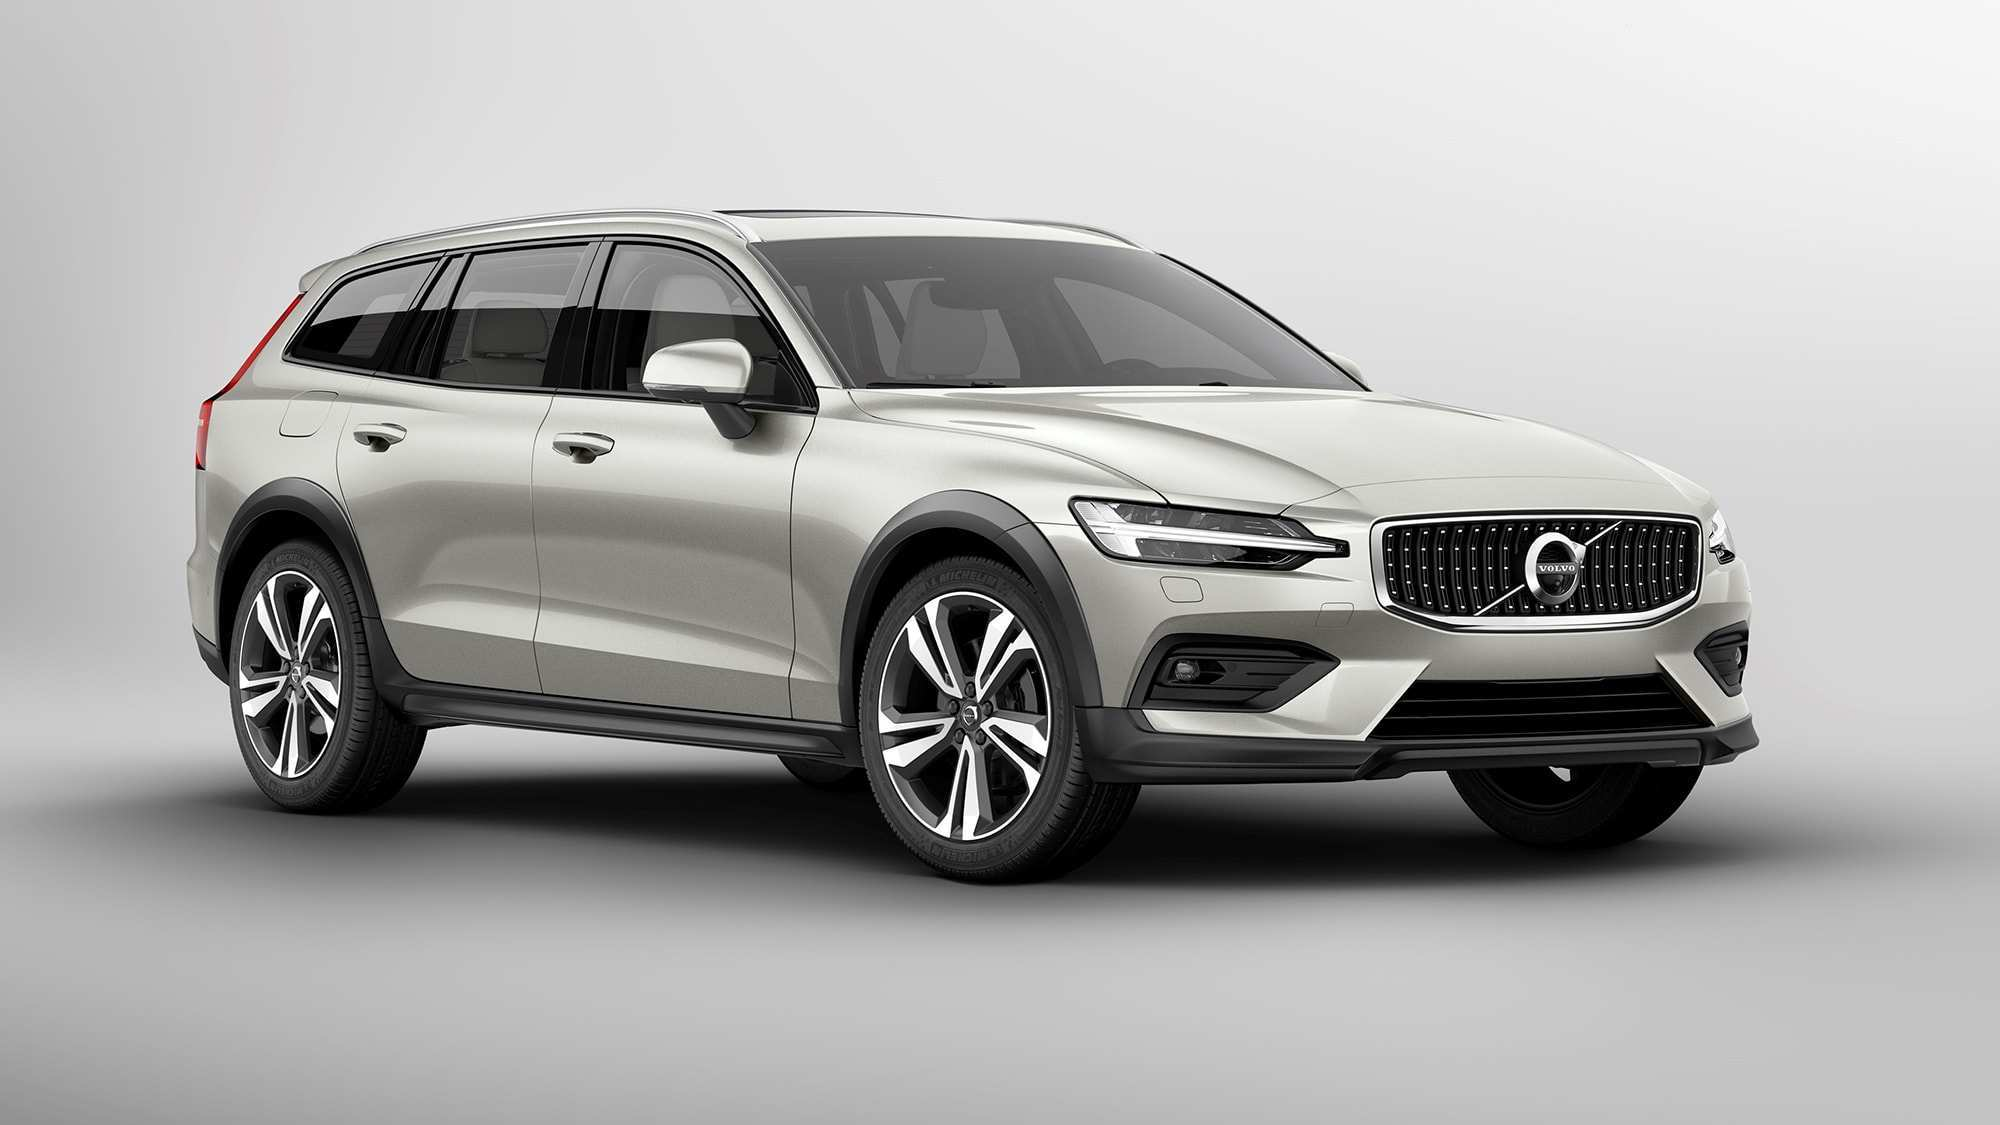 64 All New 2020 Volvo V60 Cross Country Pricing